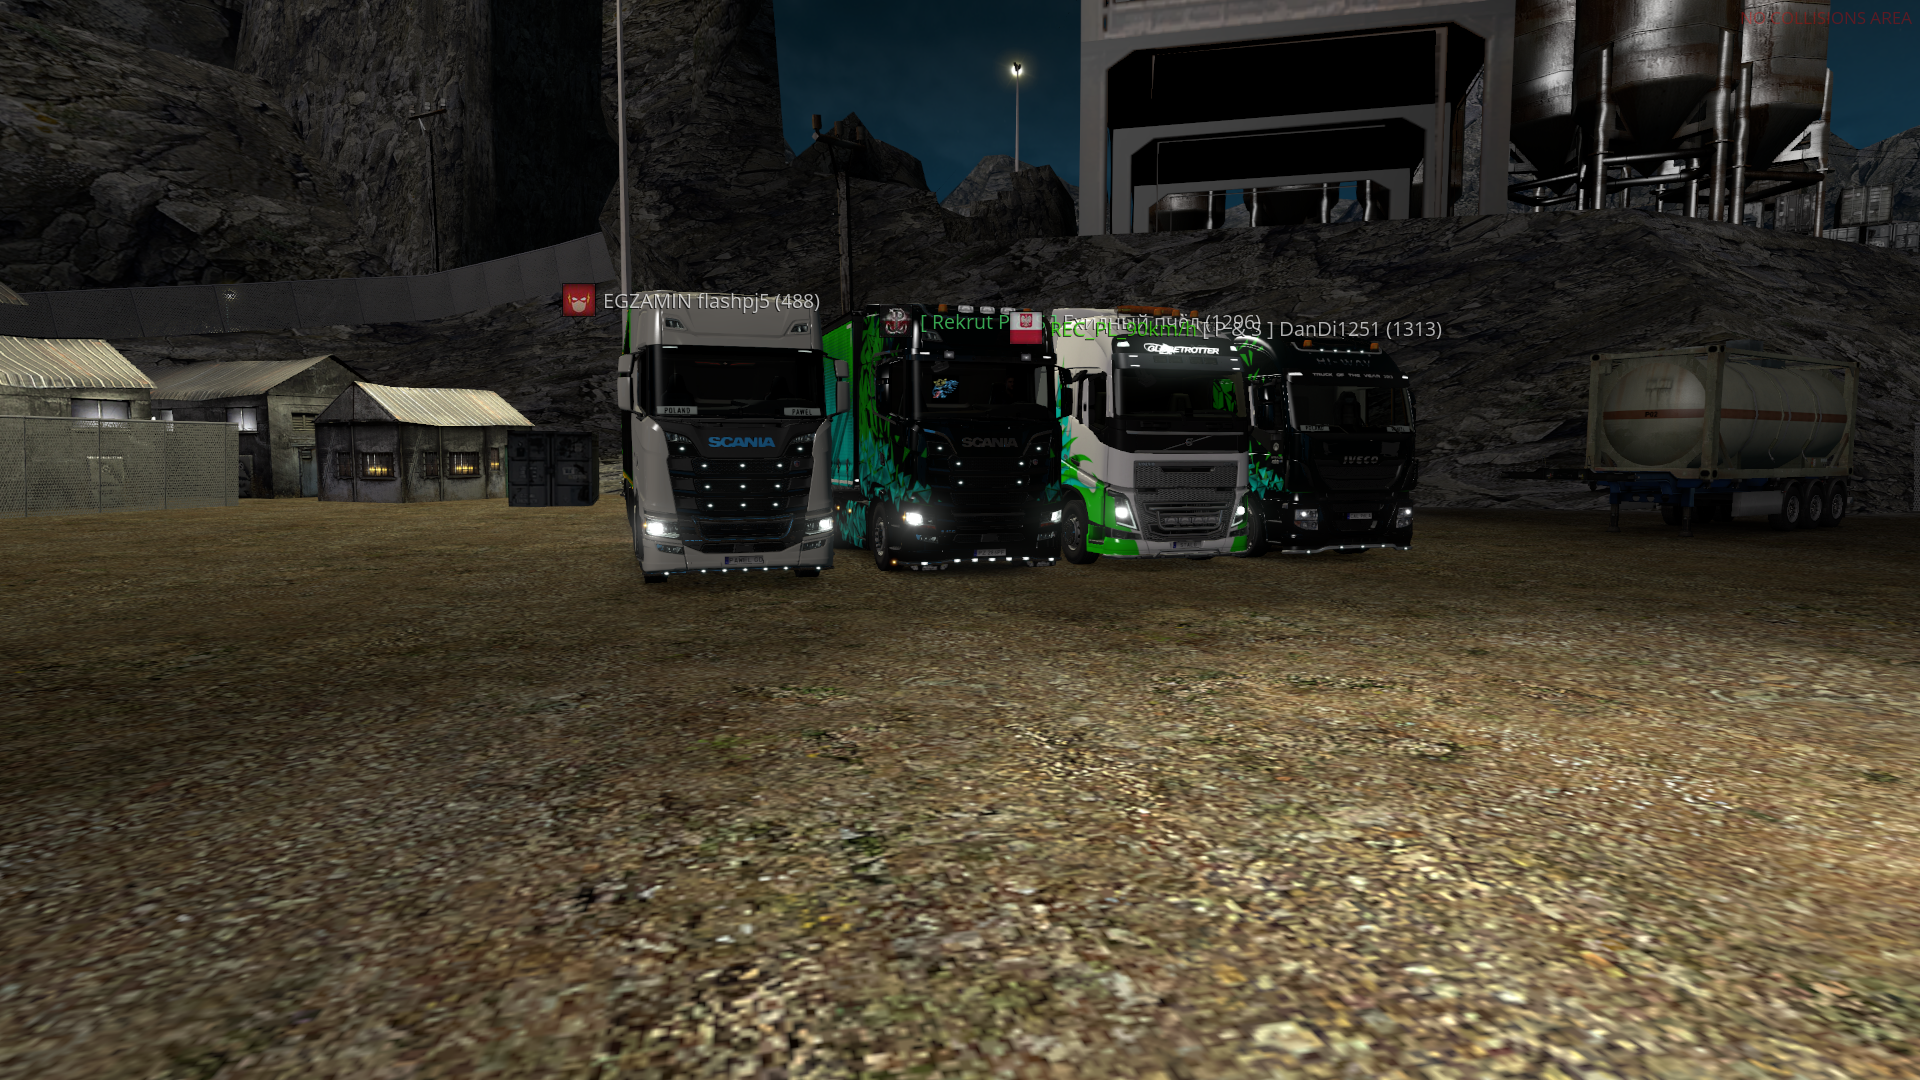 ets2_20181111_170239_00.png